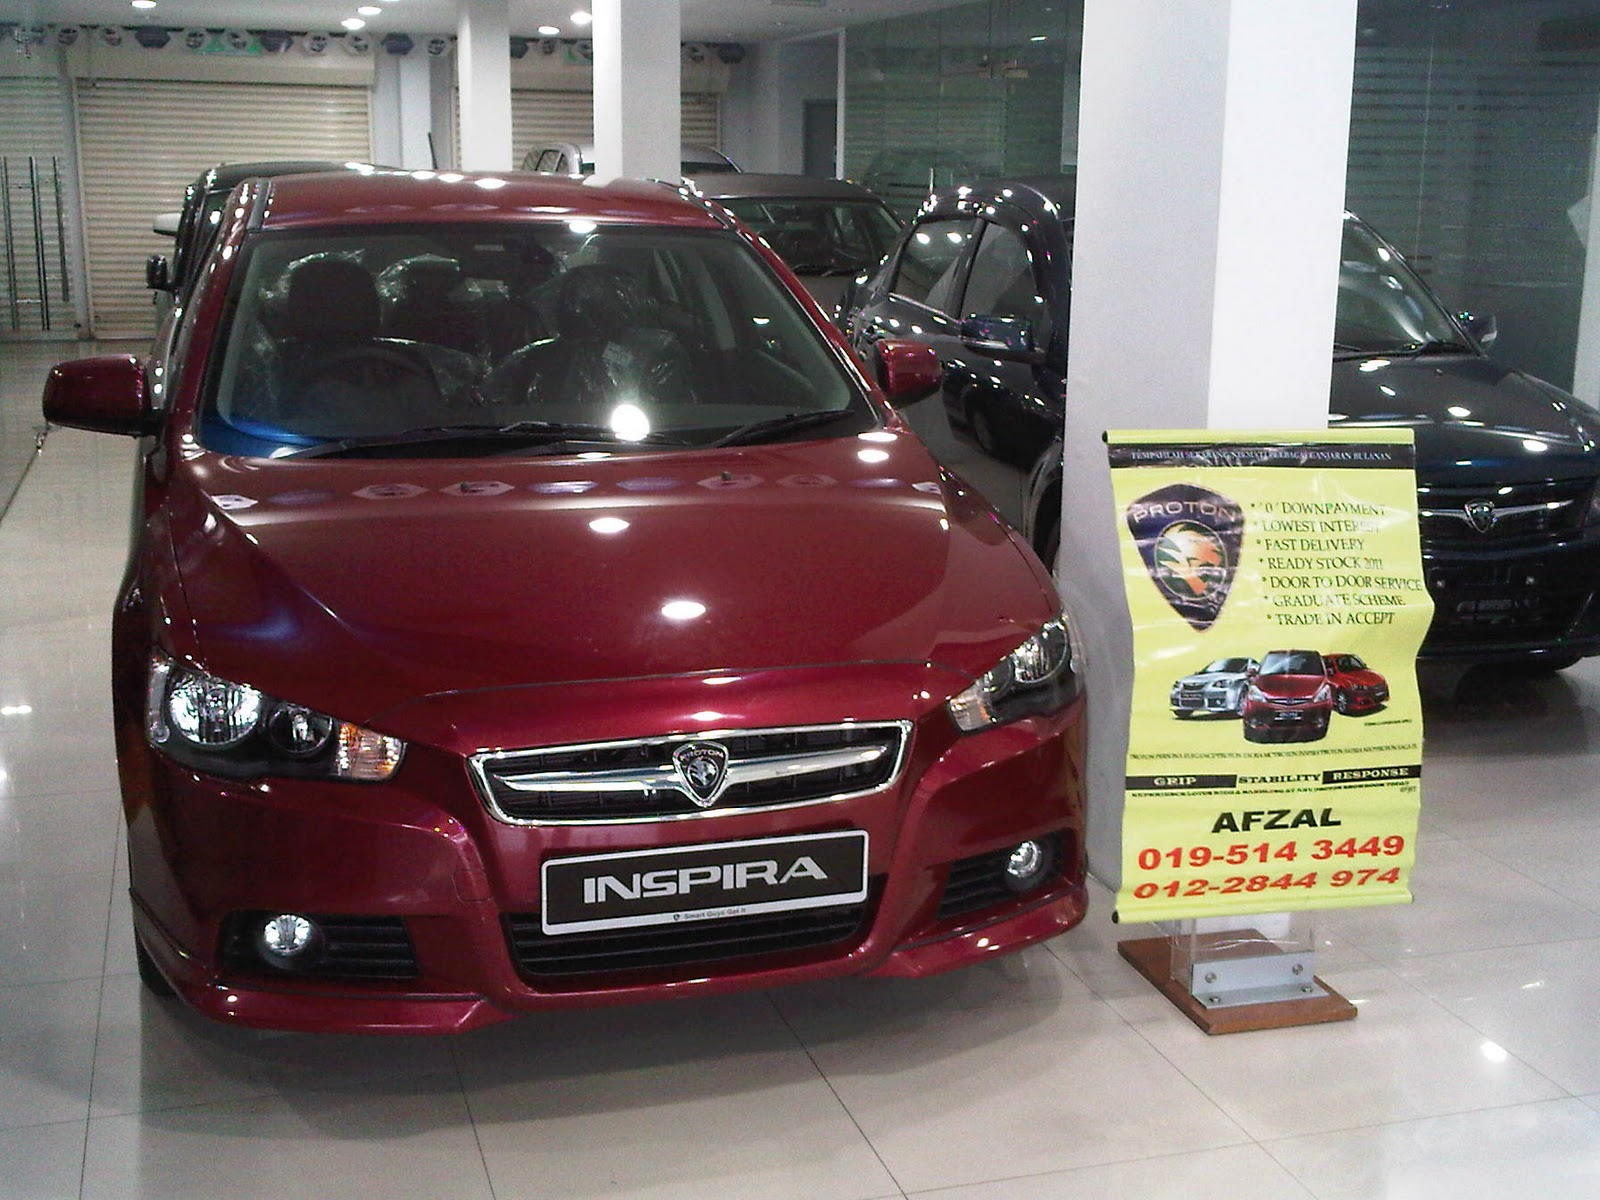 proton inspira Find great deals on ebay for proton inspira shop with confidence.